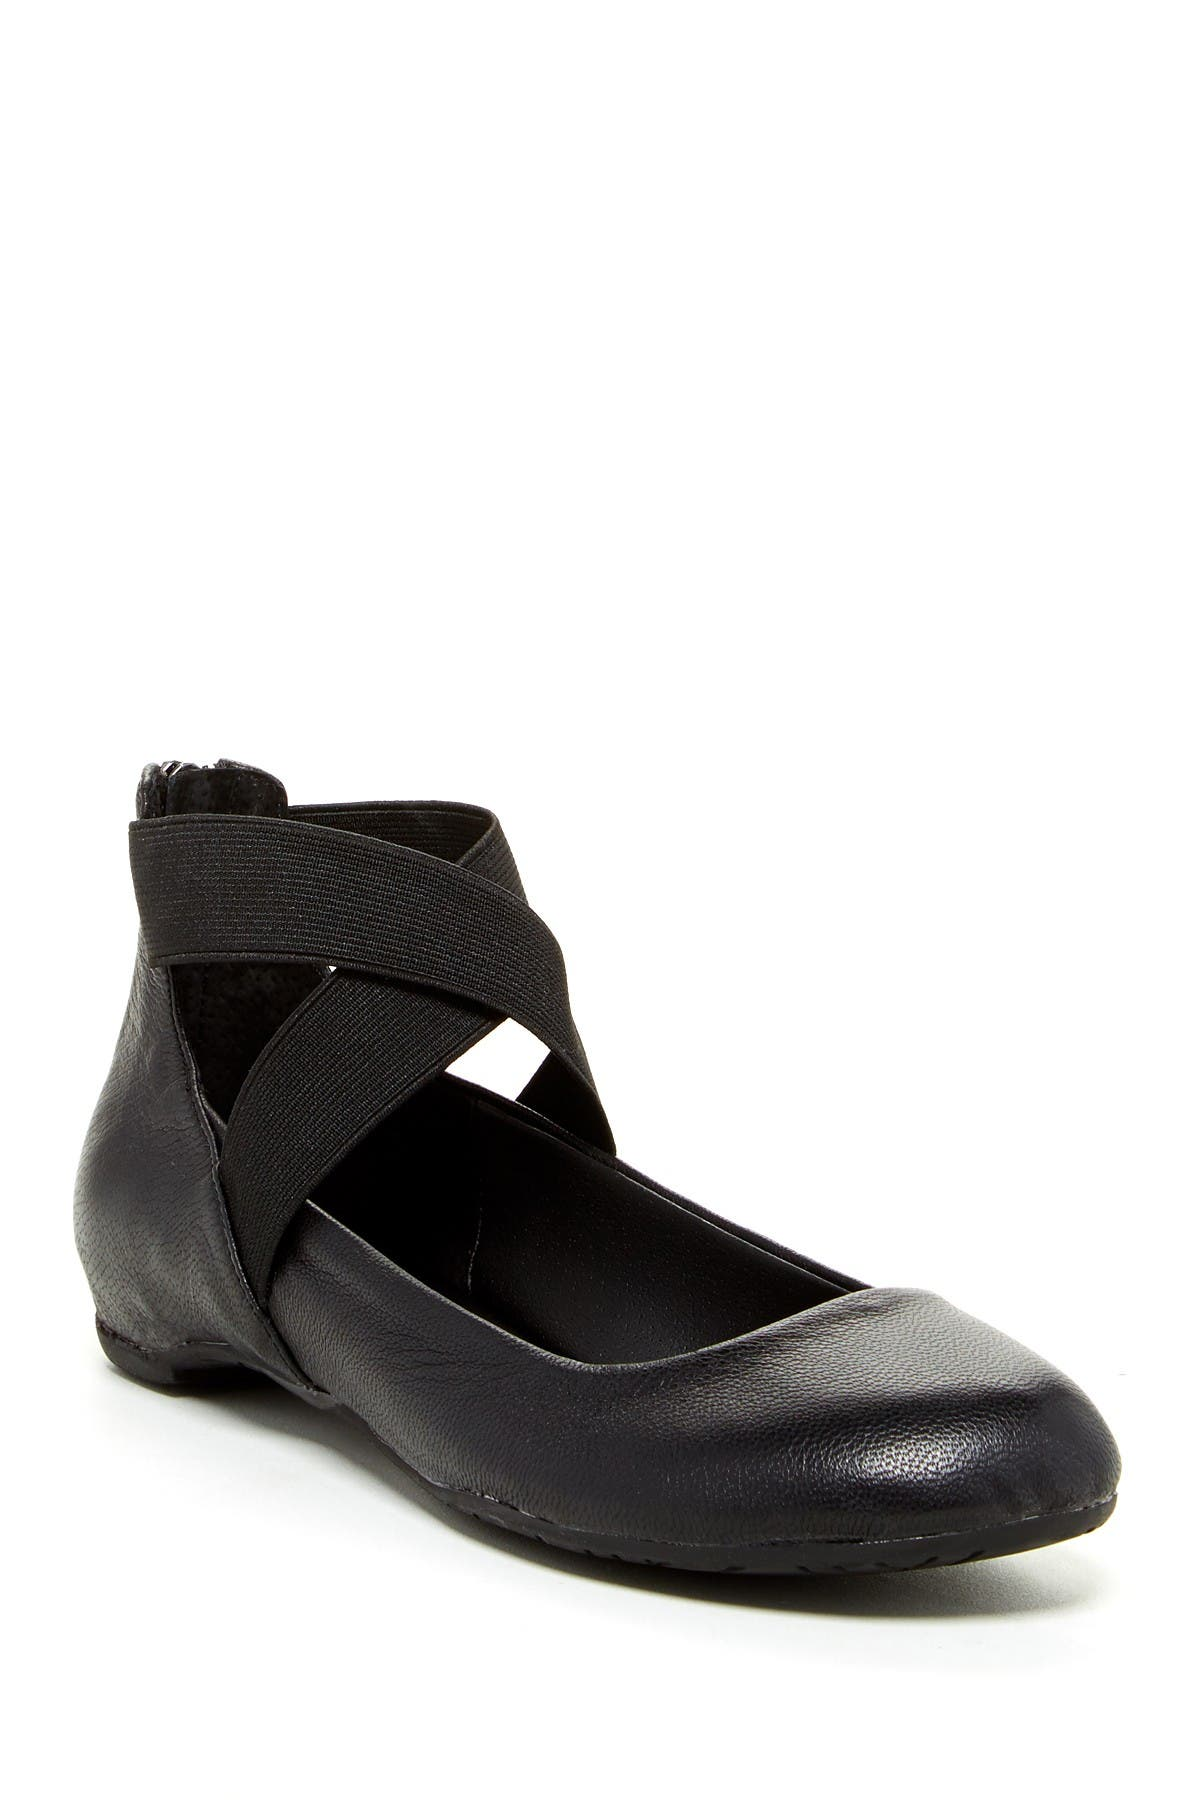 Kenneth Cole Reaction Pro-Time Ankle Strap Flat at Nordstrom Rack